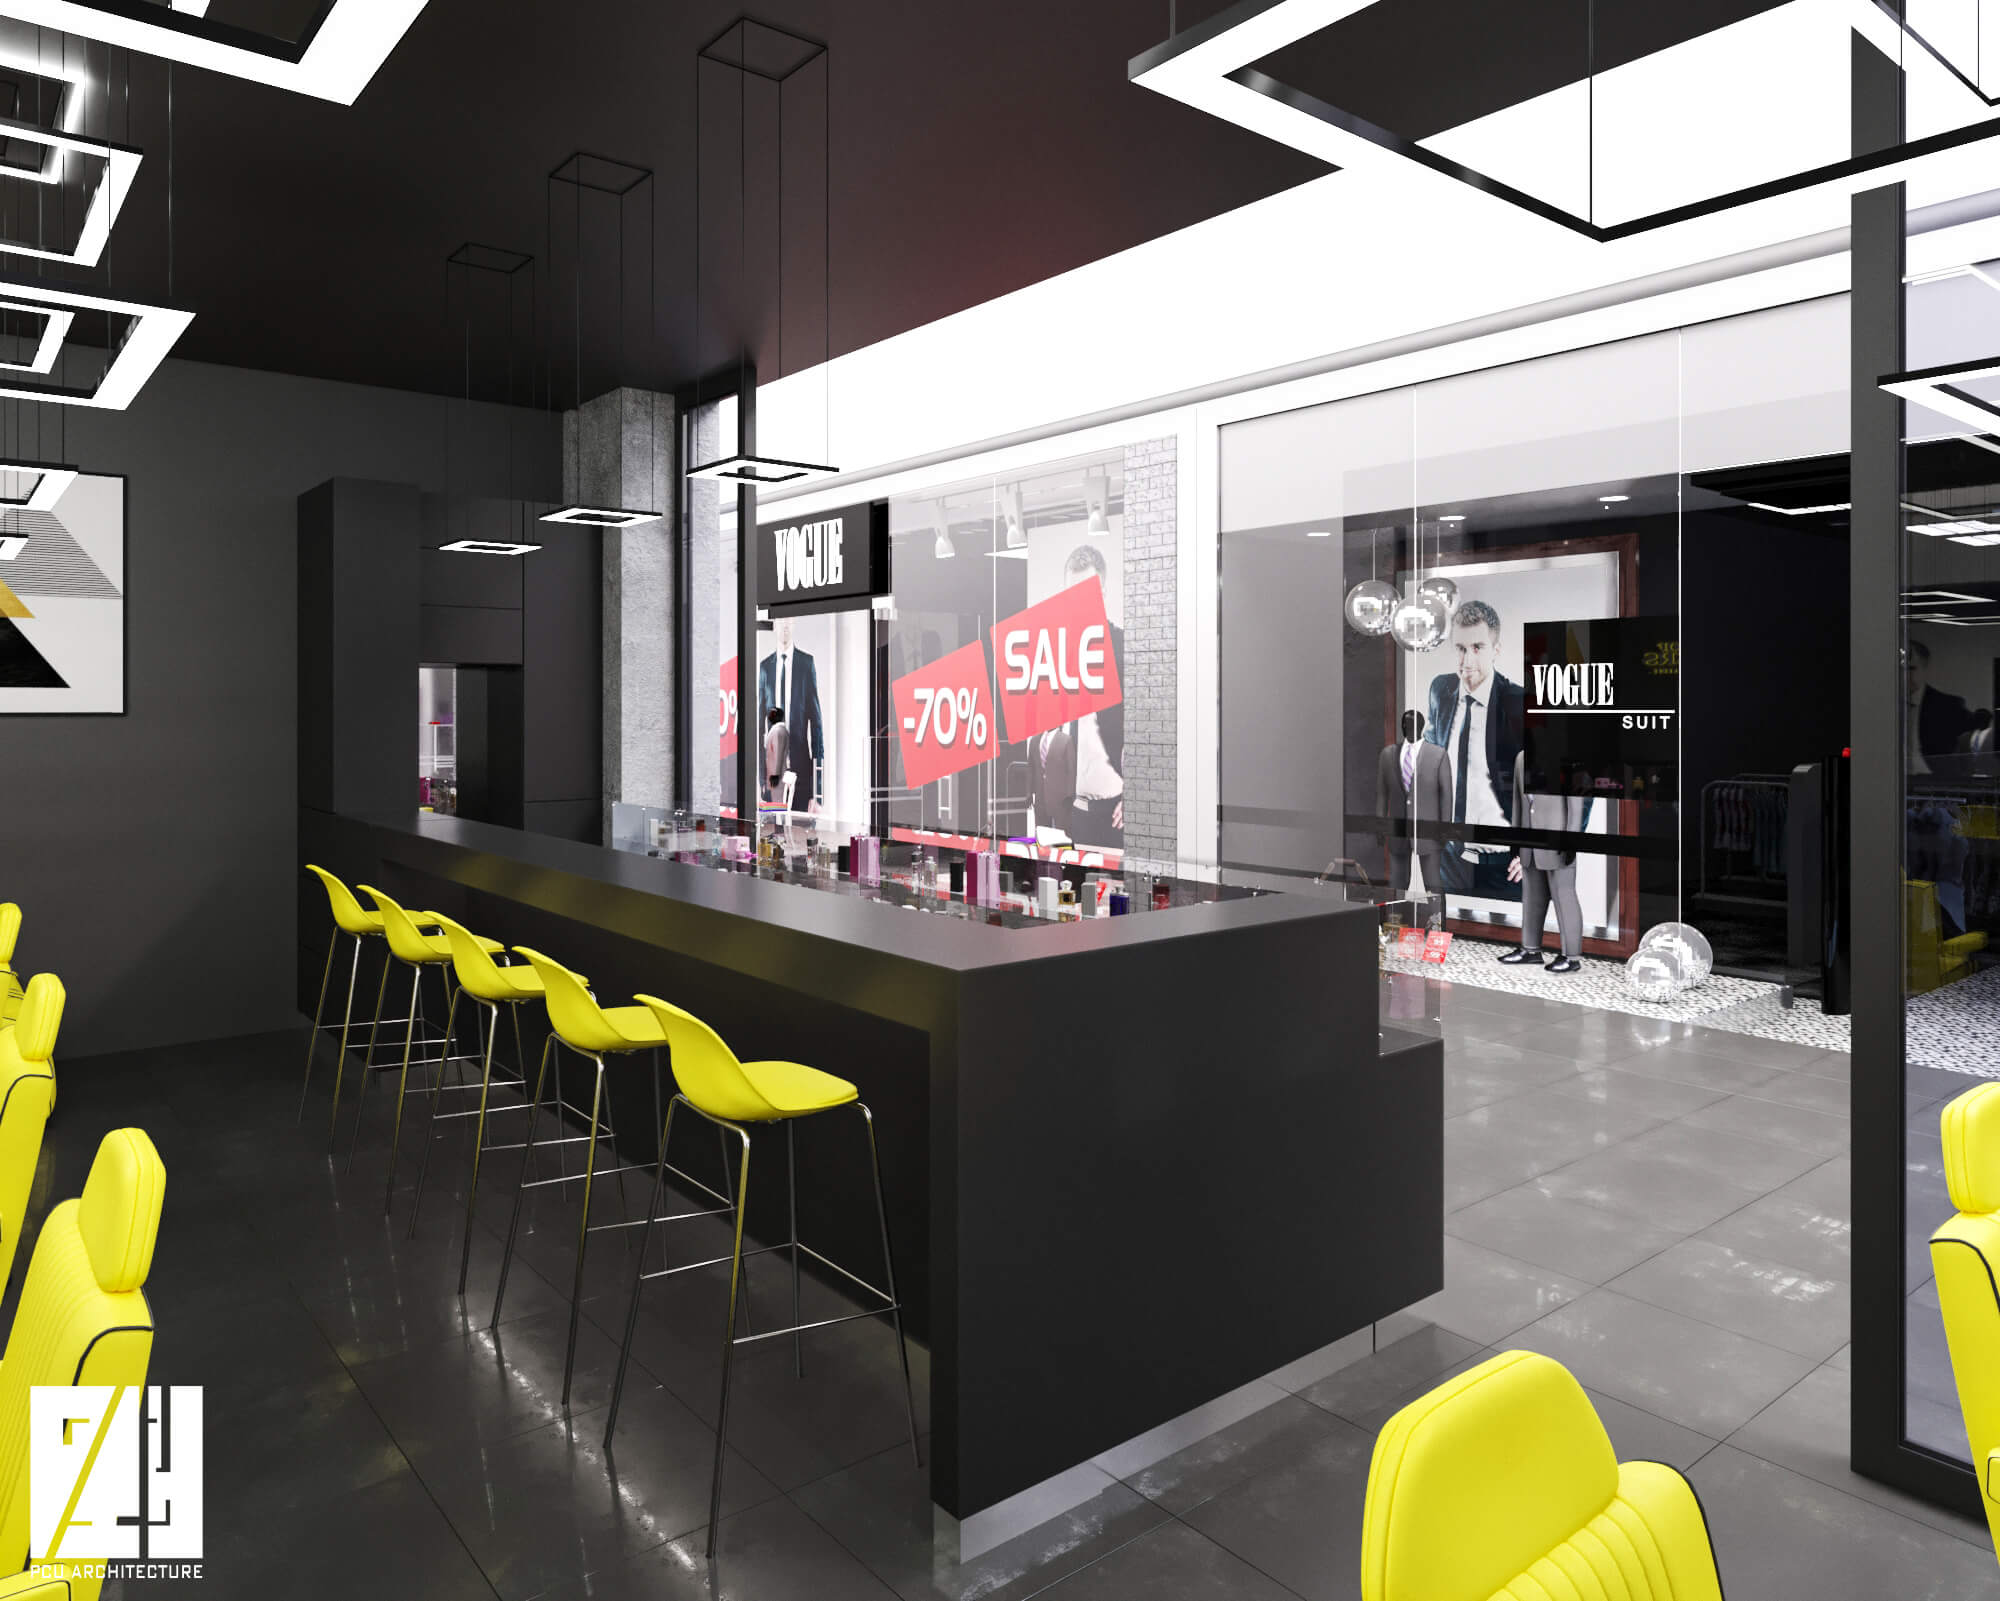 10_DI_HOUSE OF BARBERS_SALON HAIRSTYLE 1 (6)